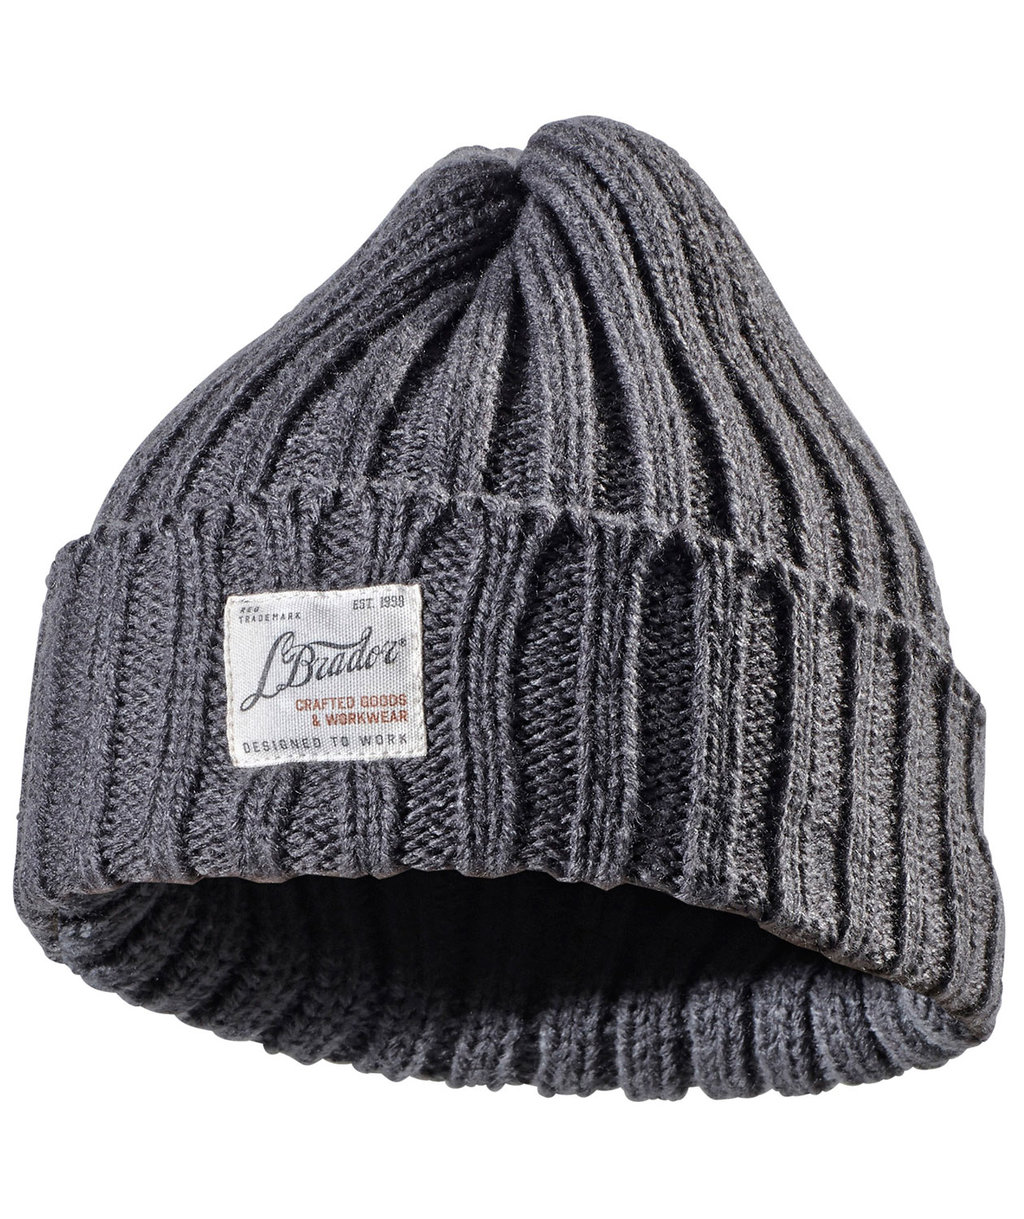 L.Brador knitted beanie 738A for kids, Grey